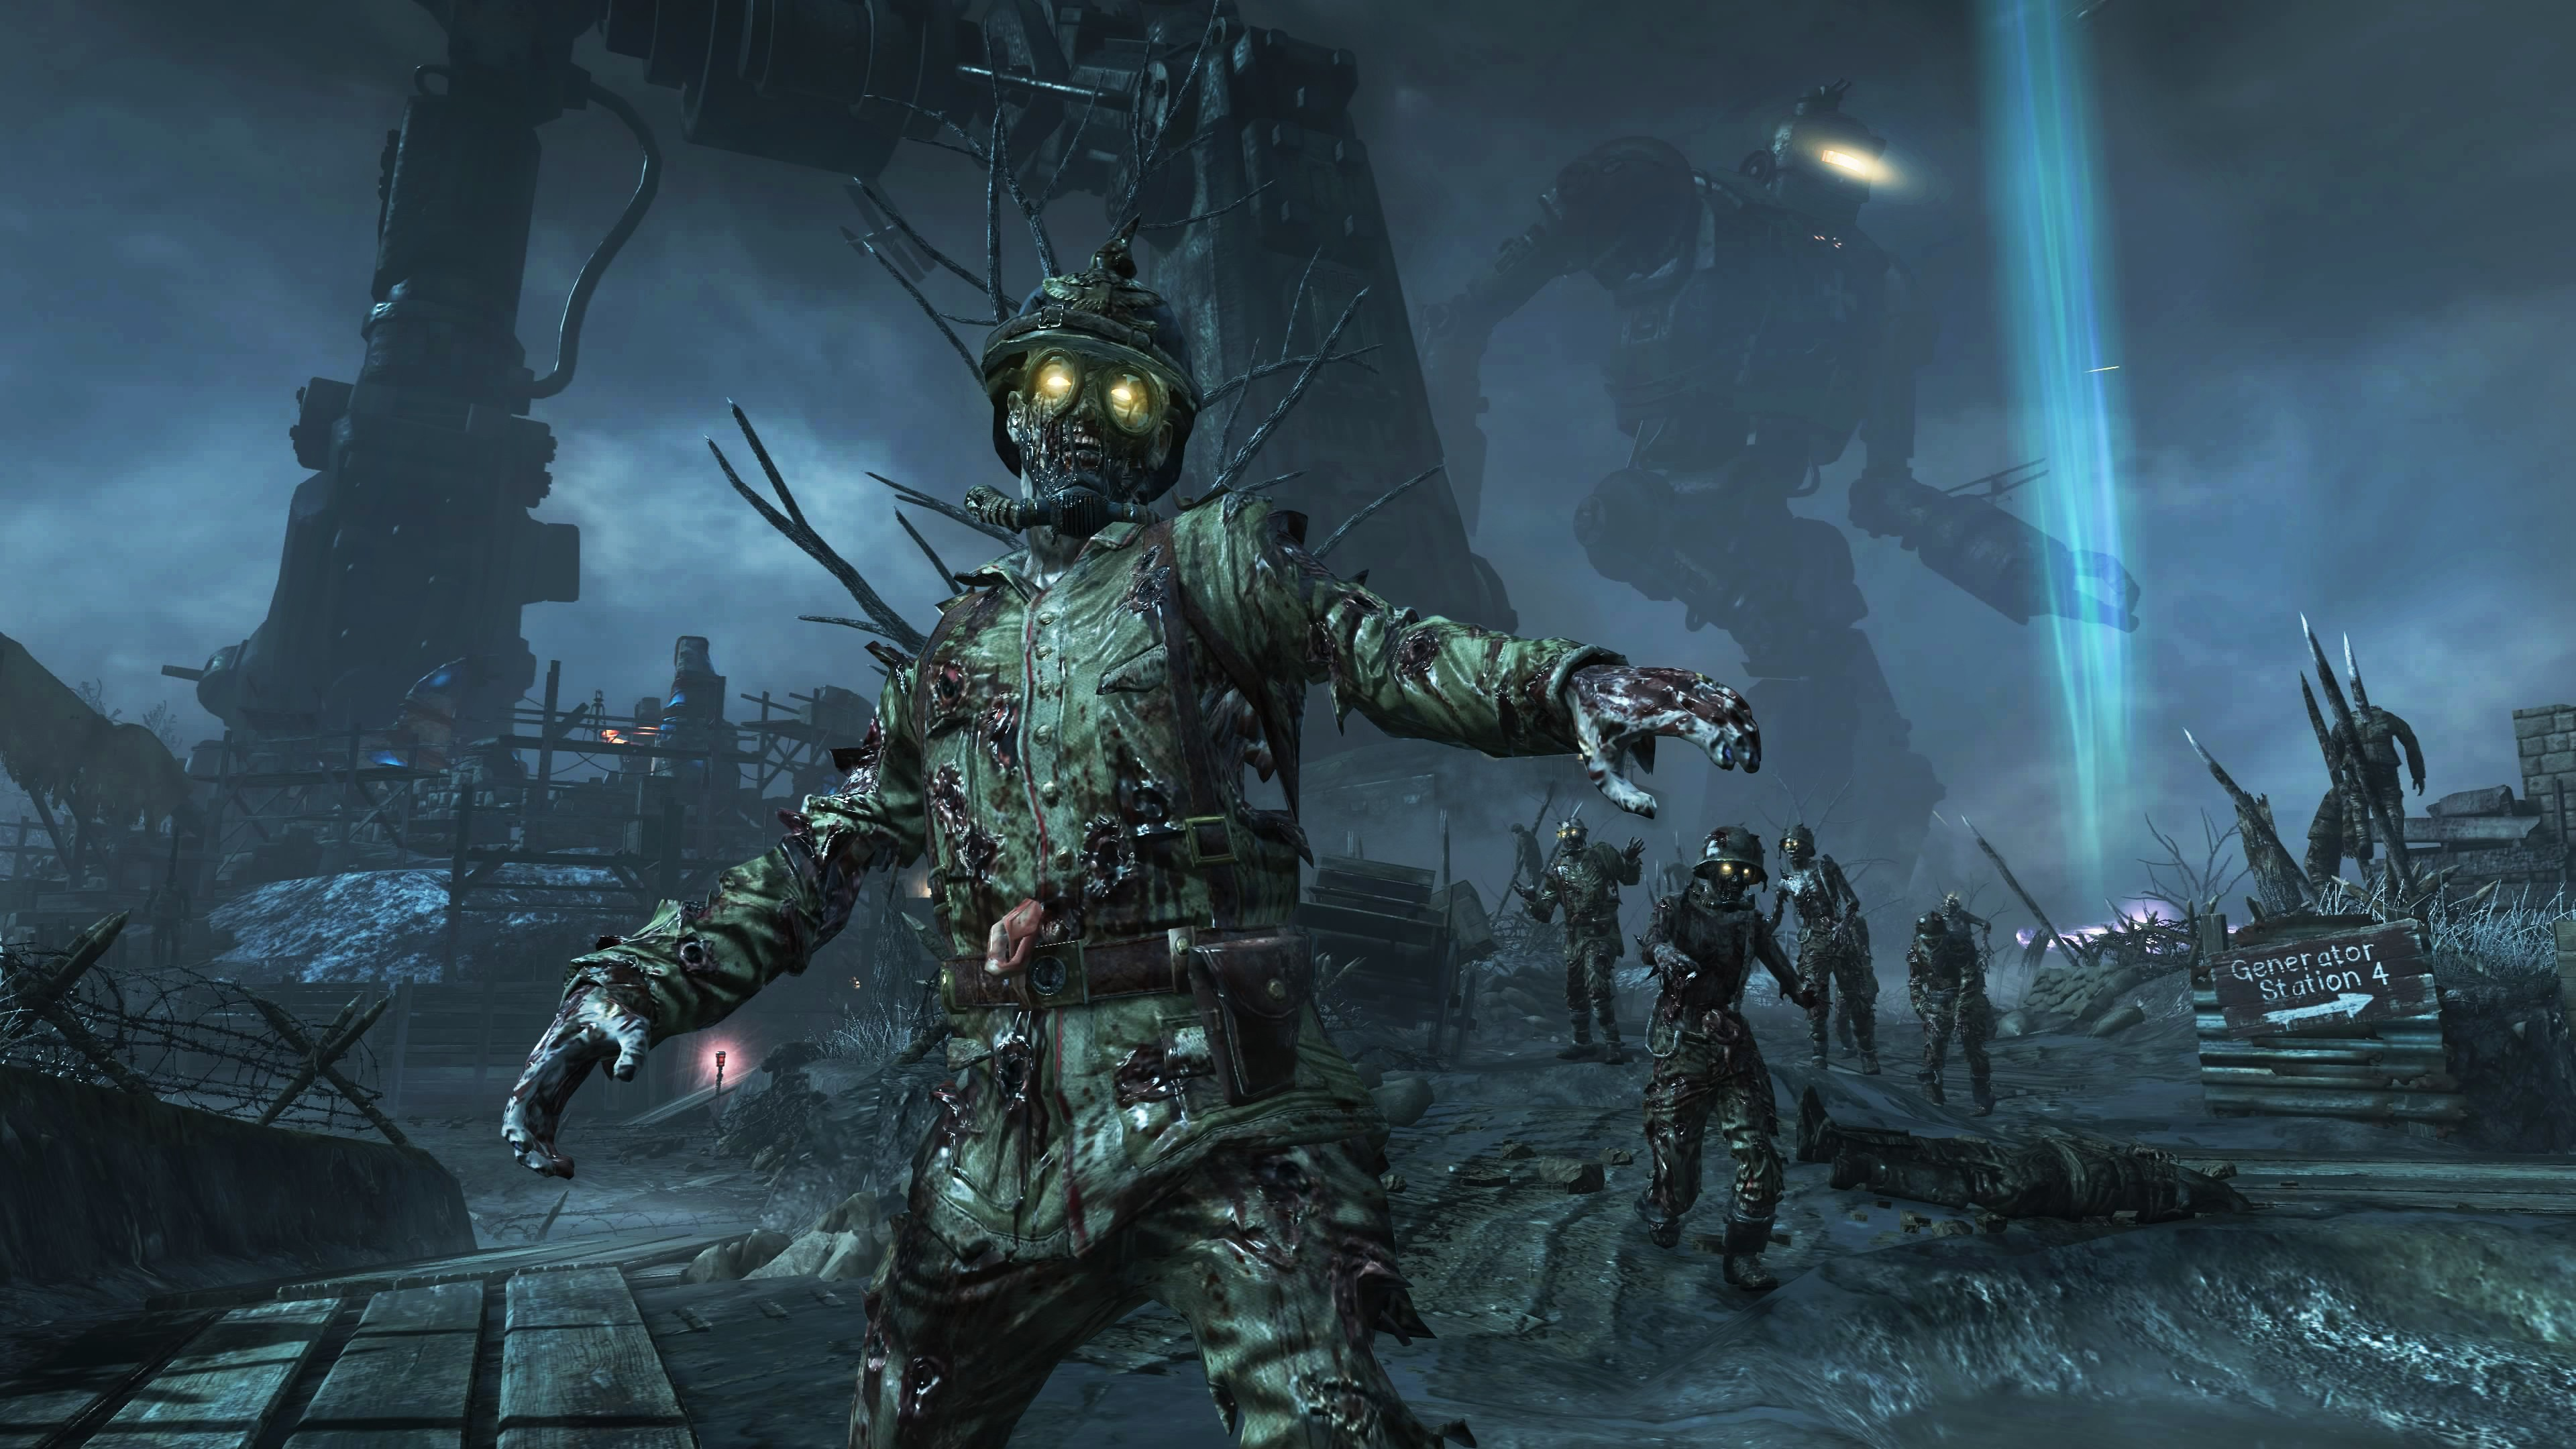 Wallpaper Call of Duty World at War Zombies shooter CoD WaW zombie iOS